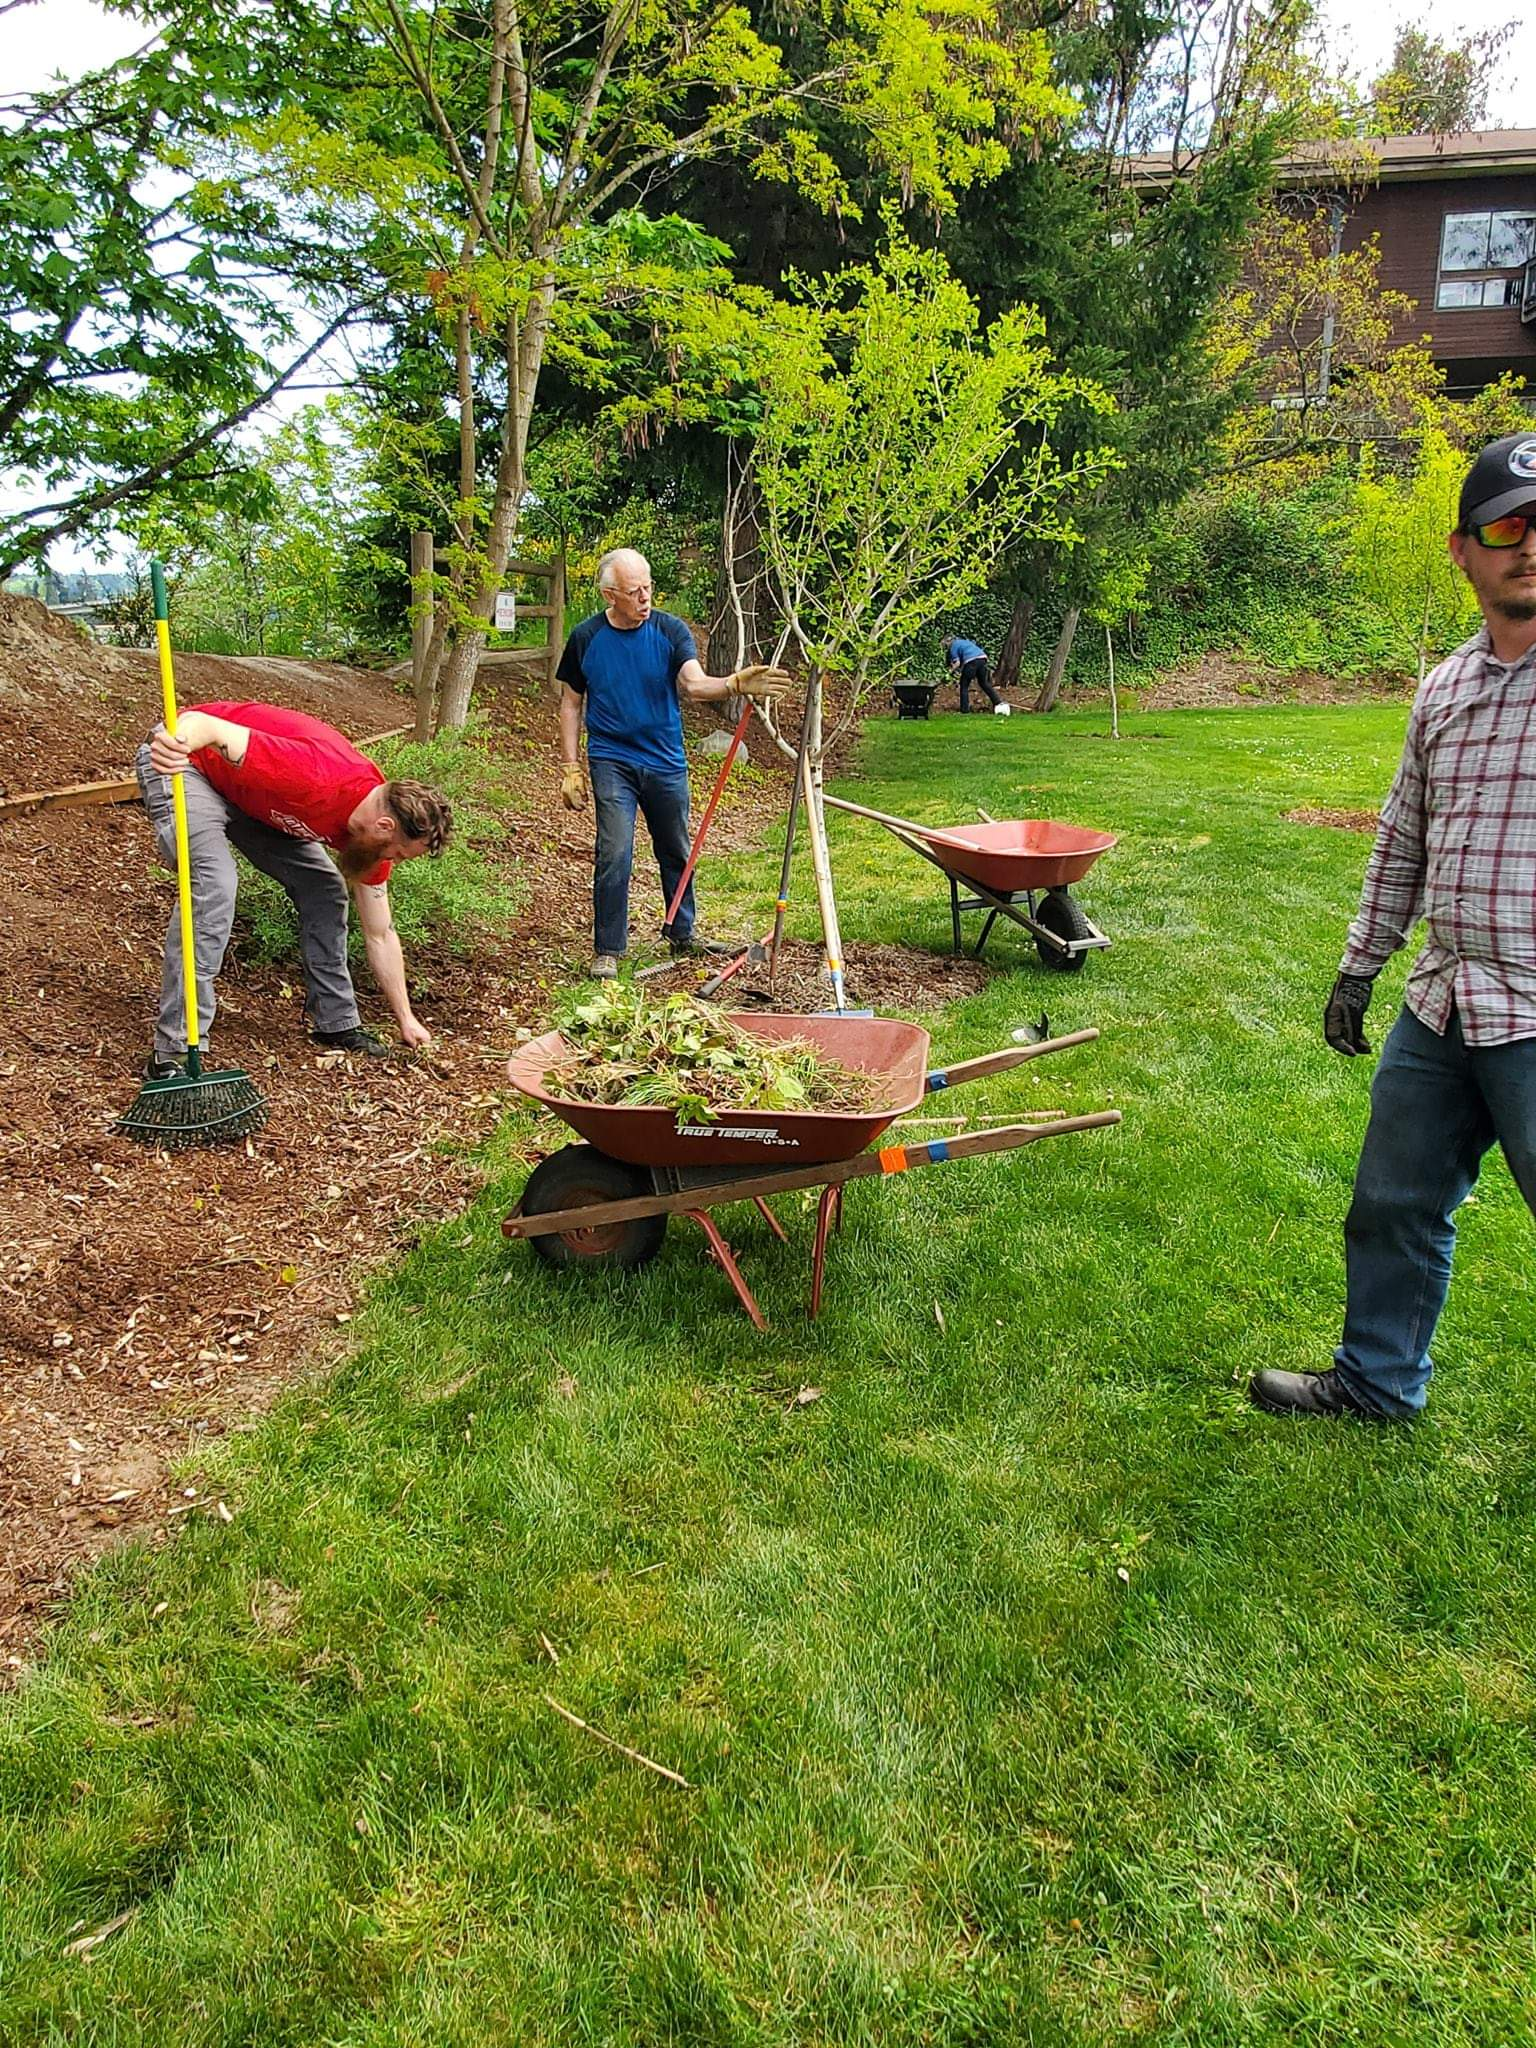 Volunteers clear the bark of weeds and other brush